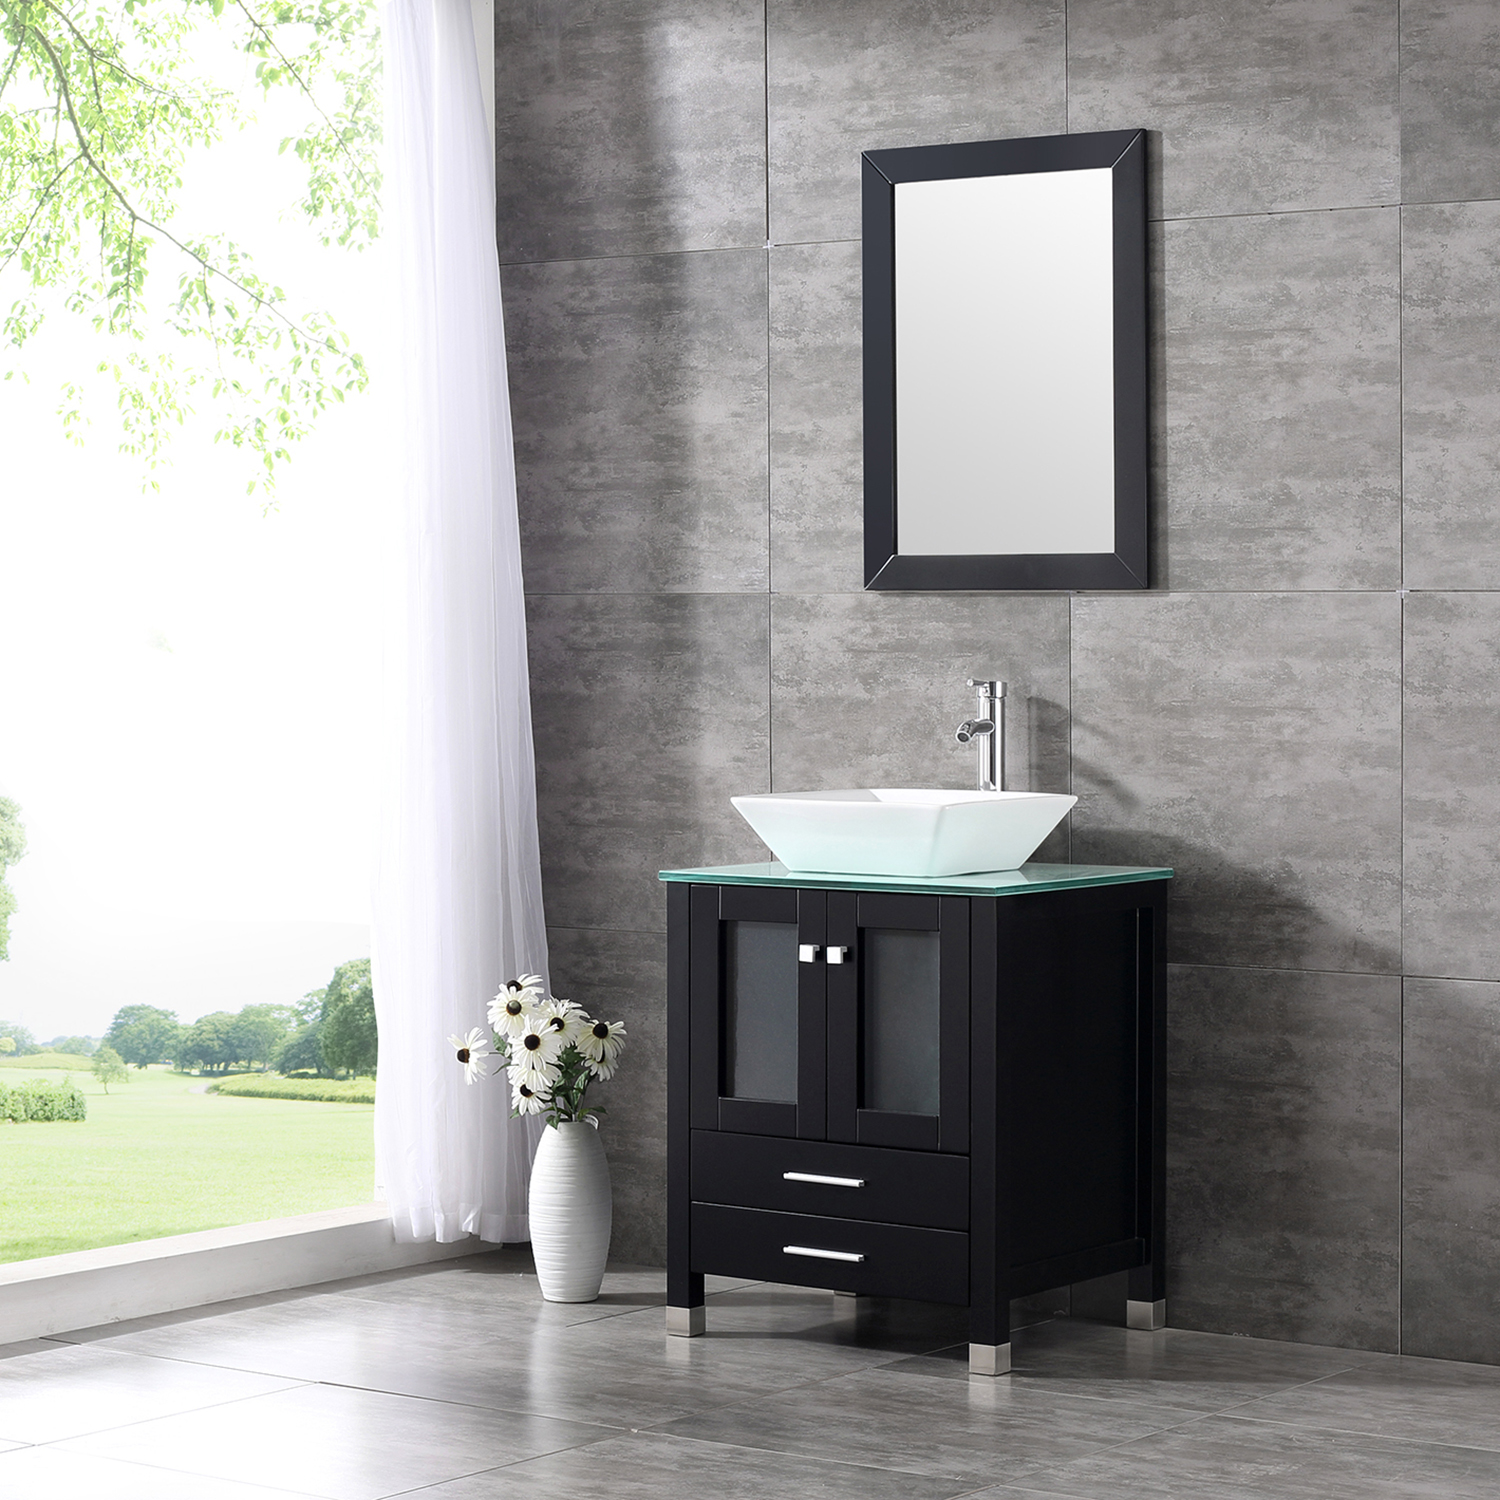 Wood Bathroom Vanity Cabinet Tempered Glass Countertop Ceramic Sink w/ Mirror & Wood Bathroom Vanity Cabinet Tempered Glass Countertop Ceramic Sink ...